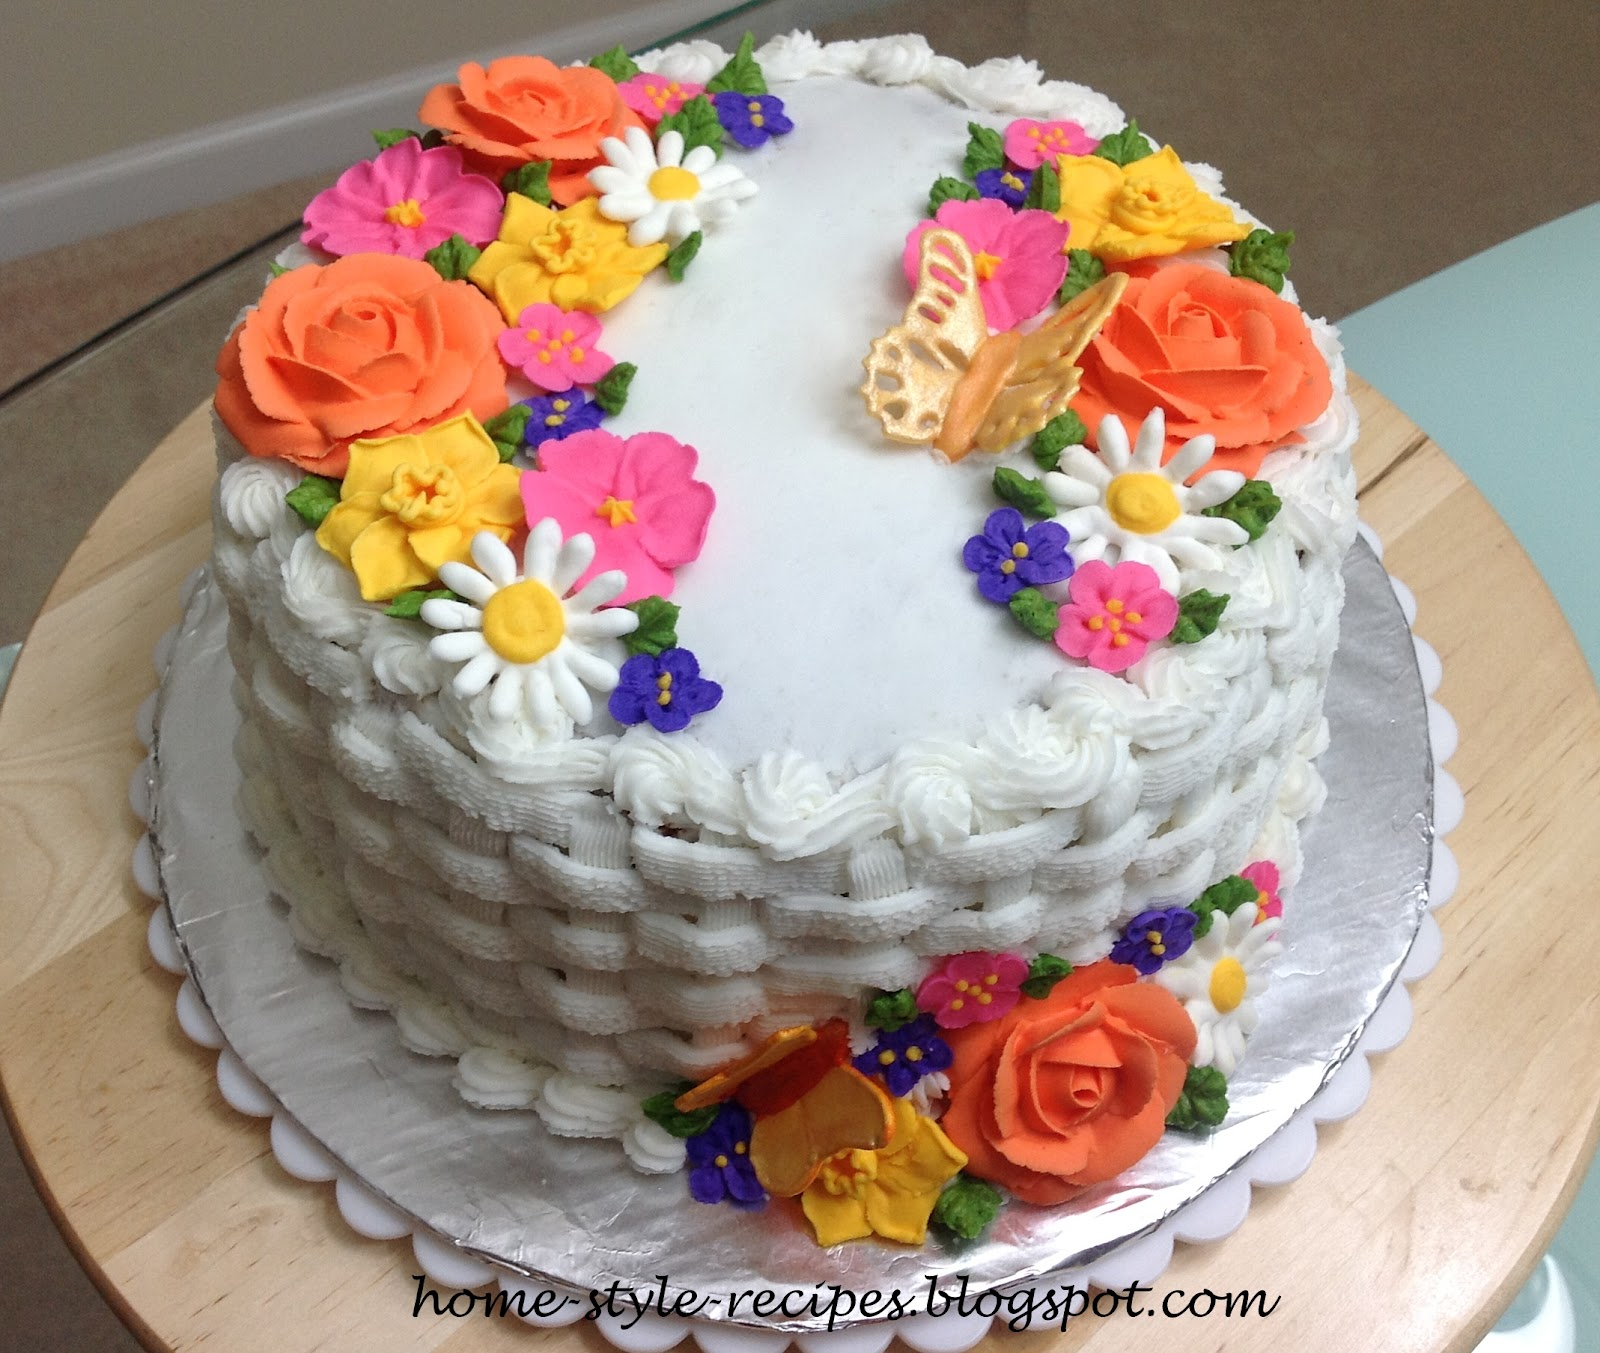 Cake Design Ideas With Flowers : Share-A-Recipe: May 2012